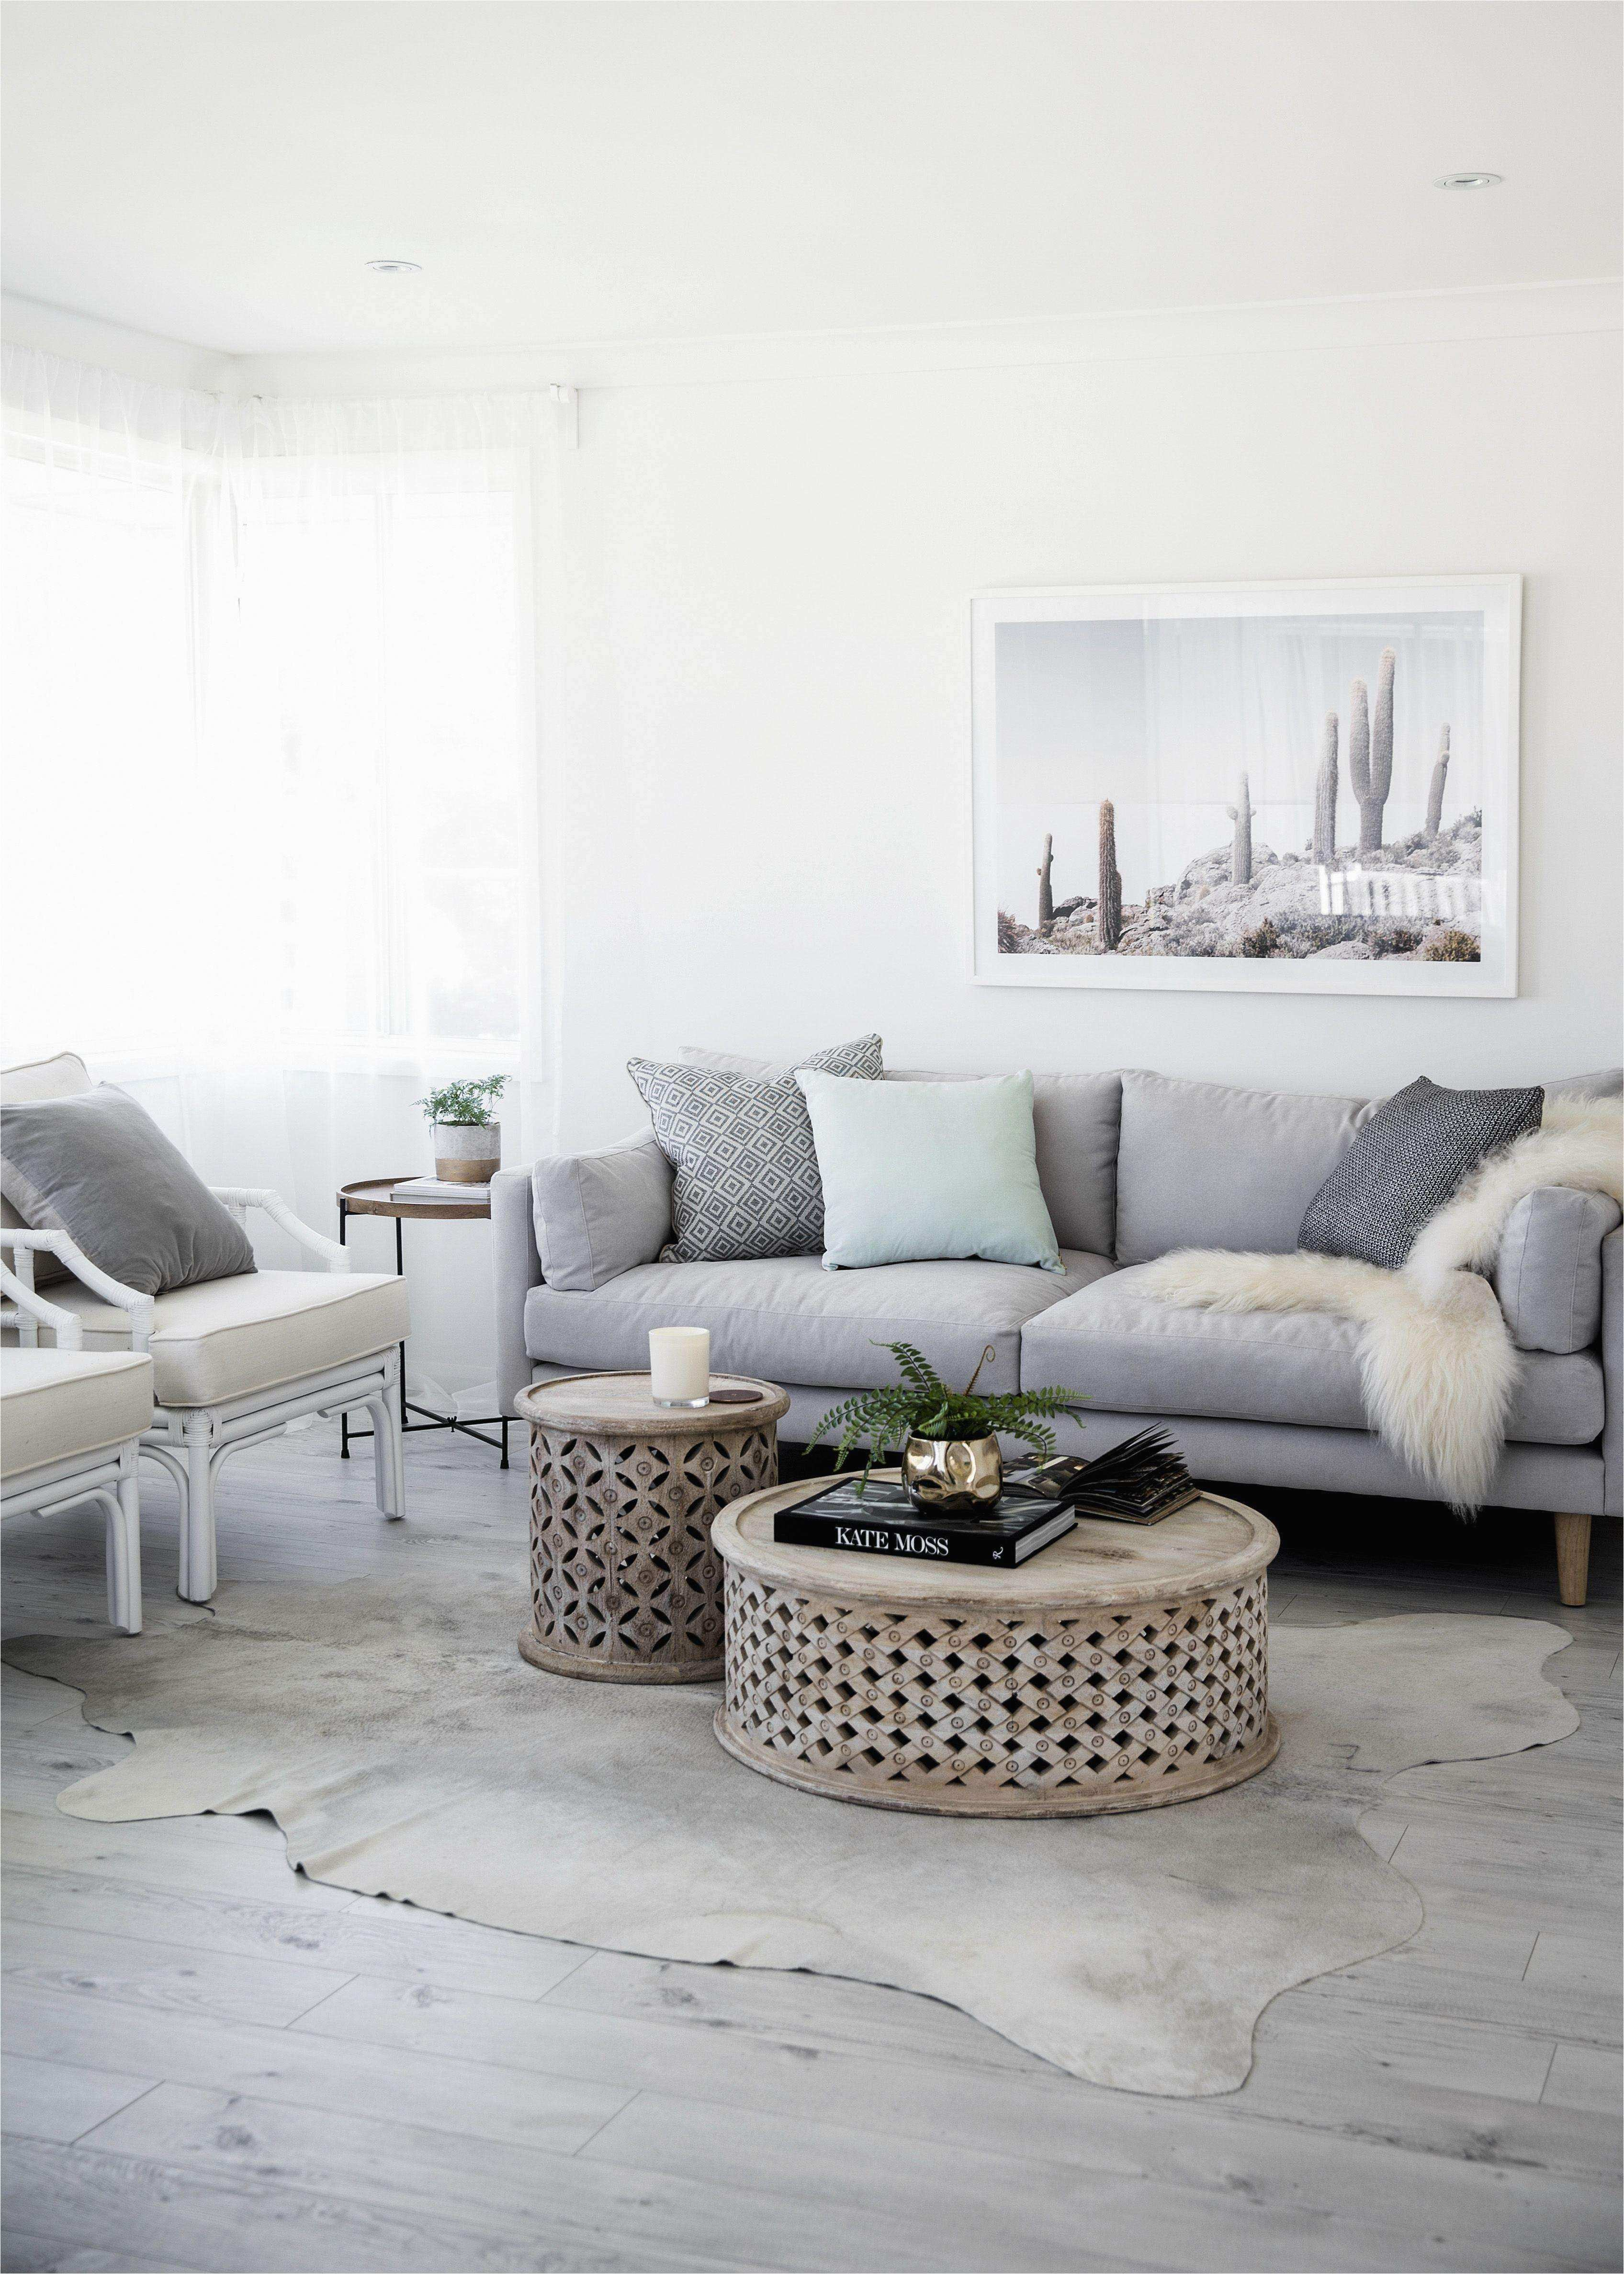 How to Decorate Living Room Wall